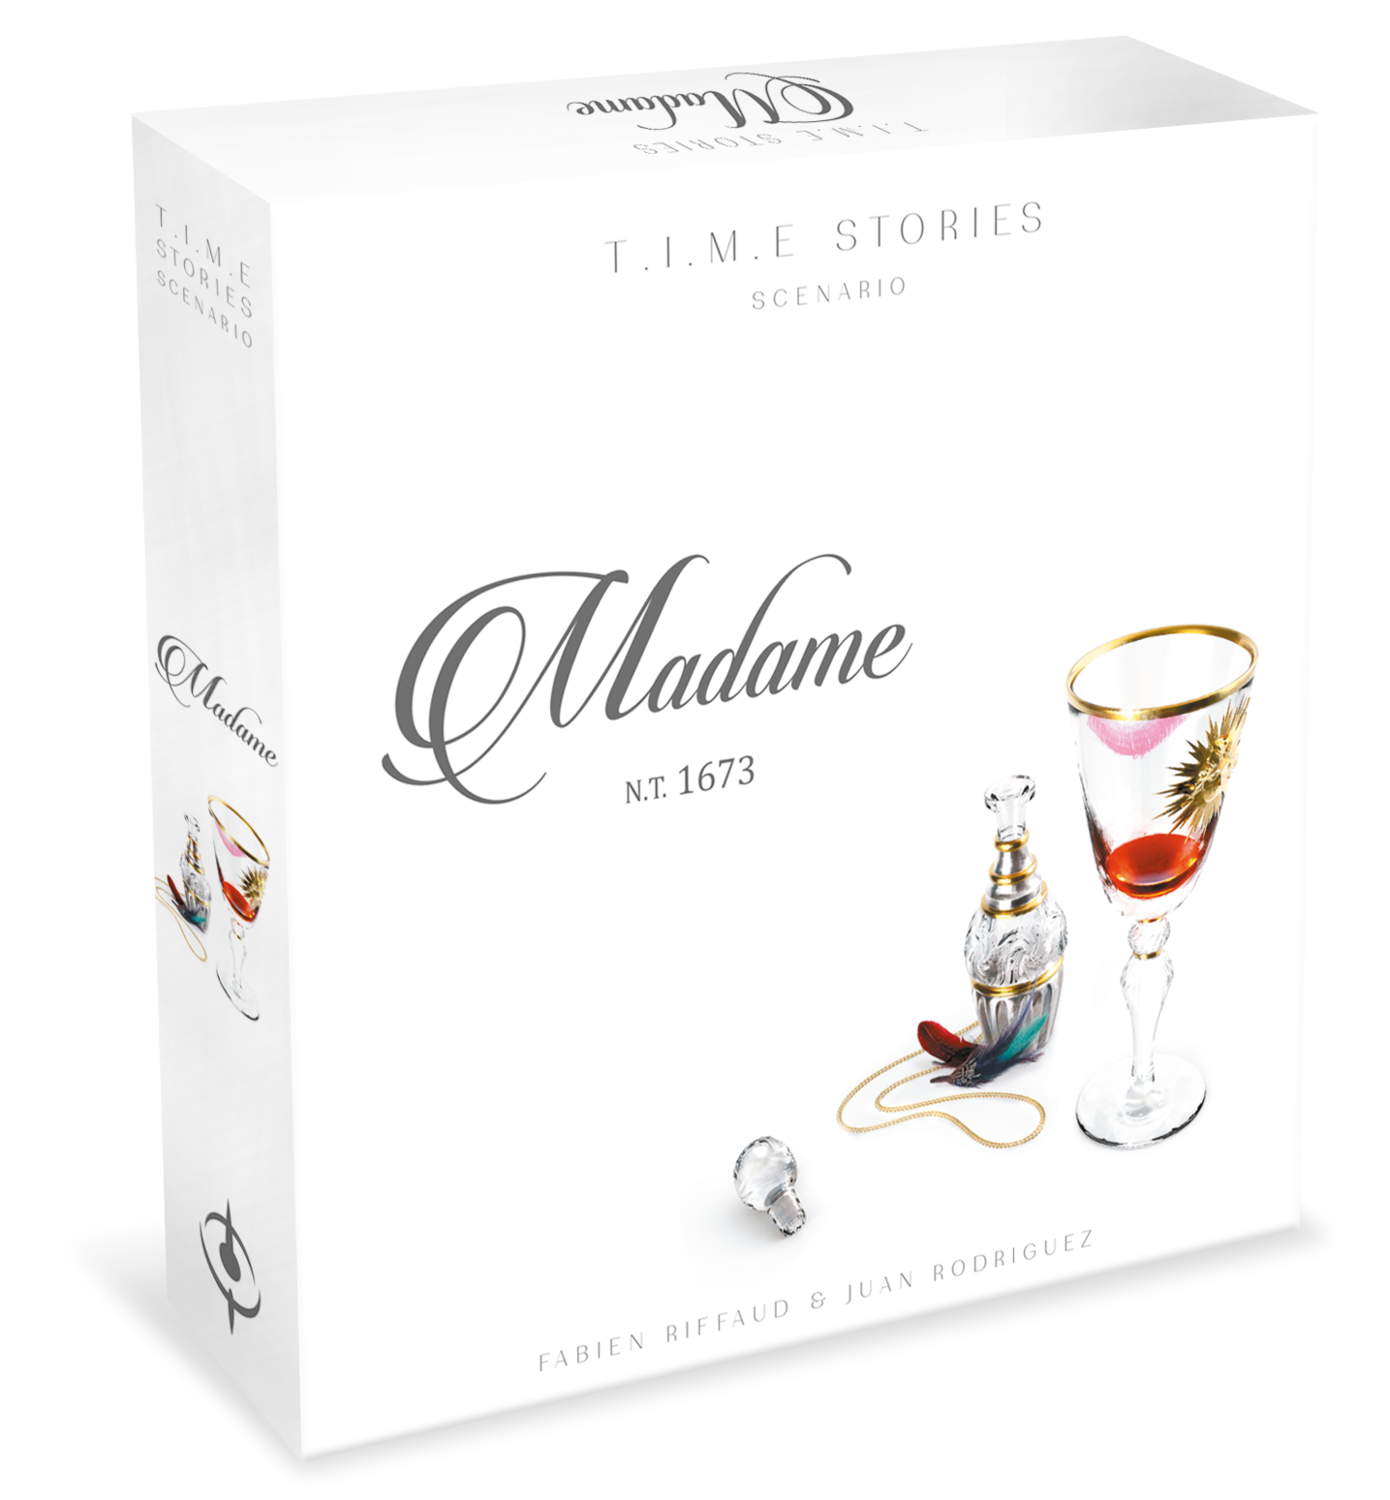 TIME Stories - Madame n.t. 1673